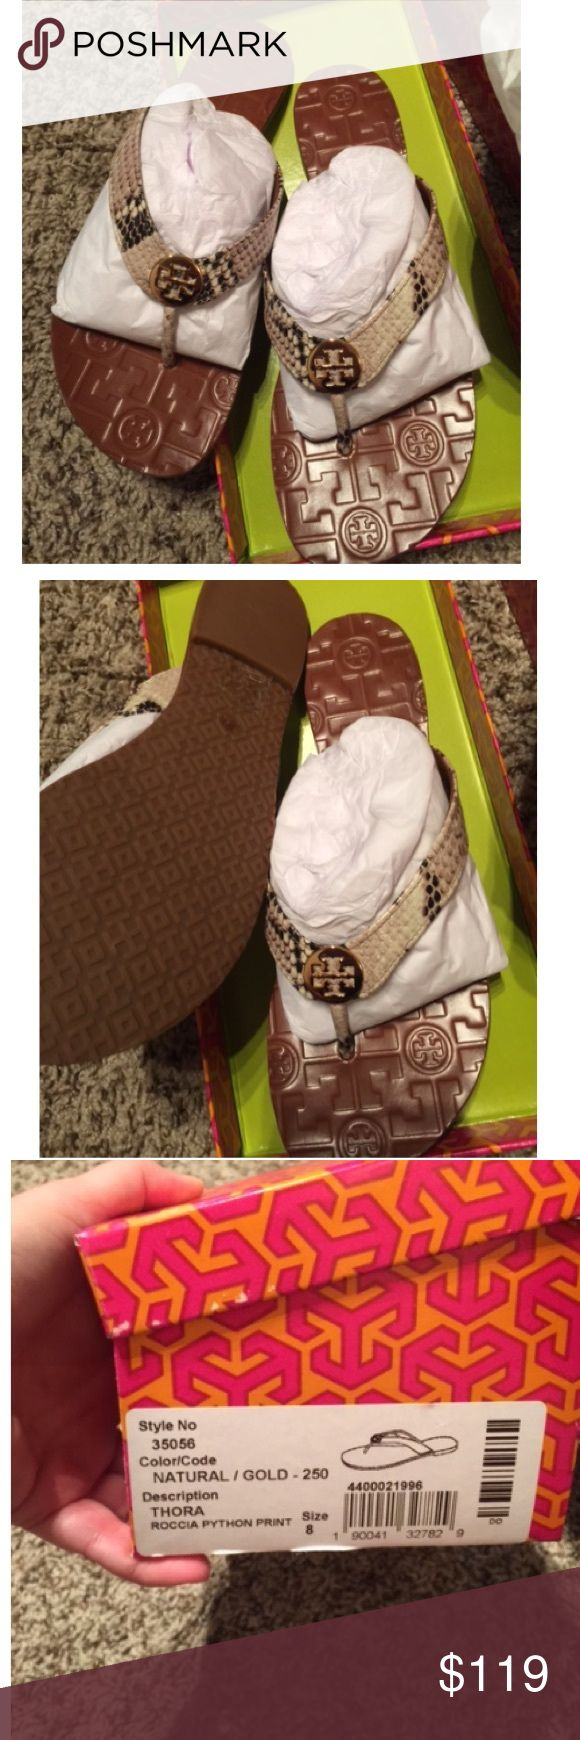 New in box Tory Burch Thora Python print sandals New in box Tory Burch Thora Python print sandals Tory Burch Shoes Sandals